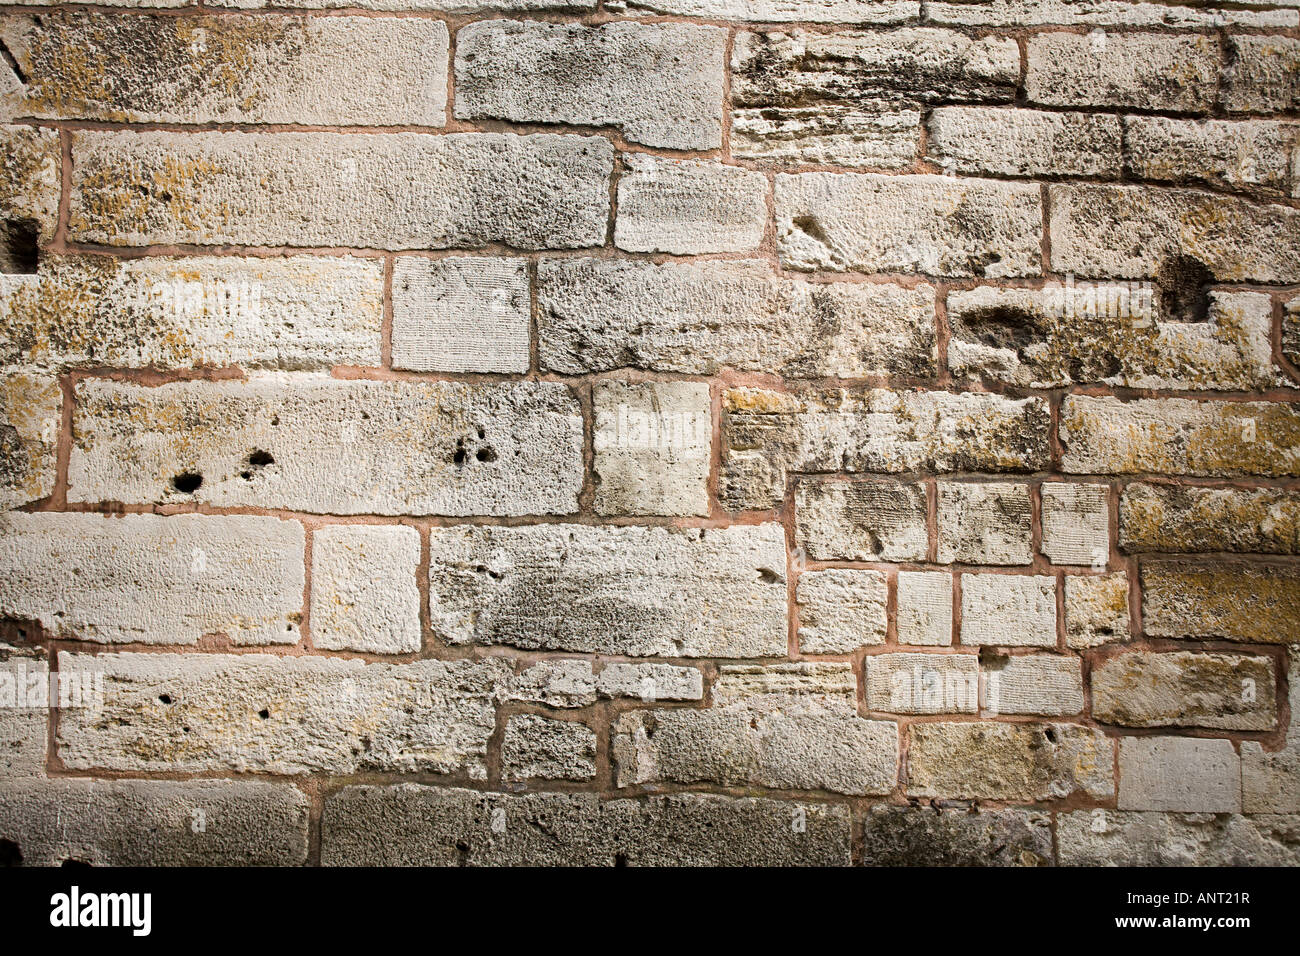 Kitchen Wall The huge rough blocks of stone that make up the kitchen walls of the Topkapi Palace - Stock Image